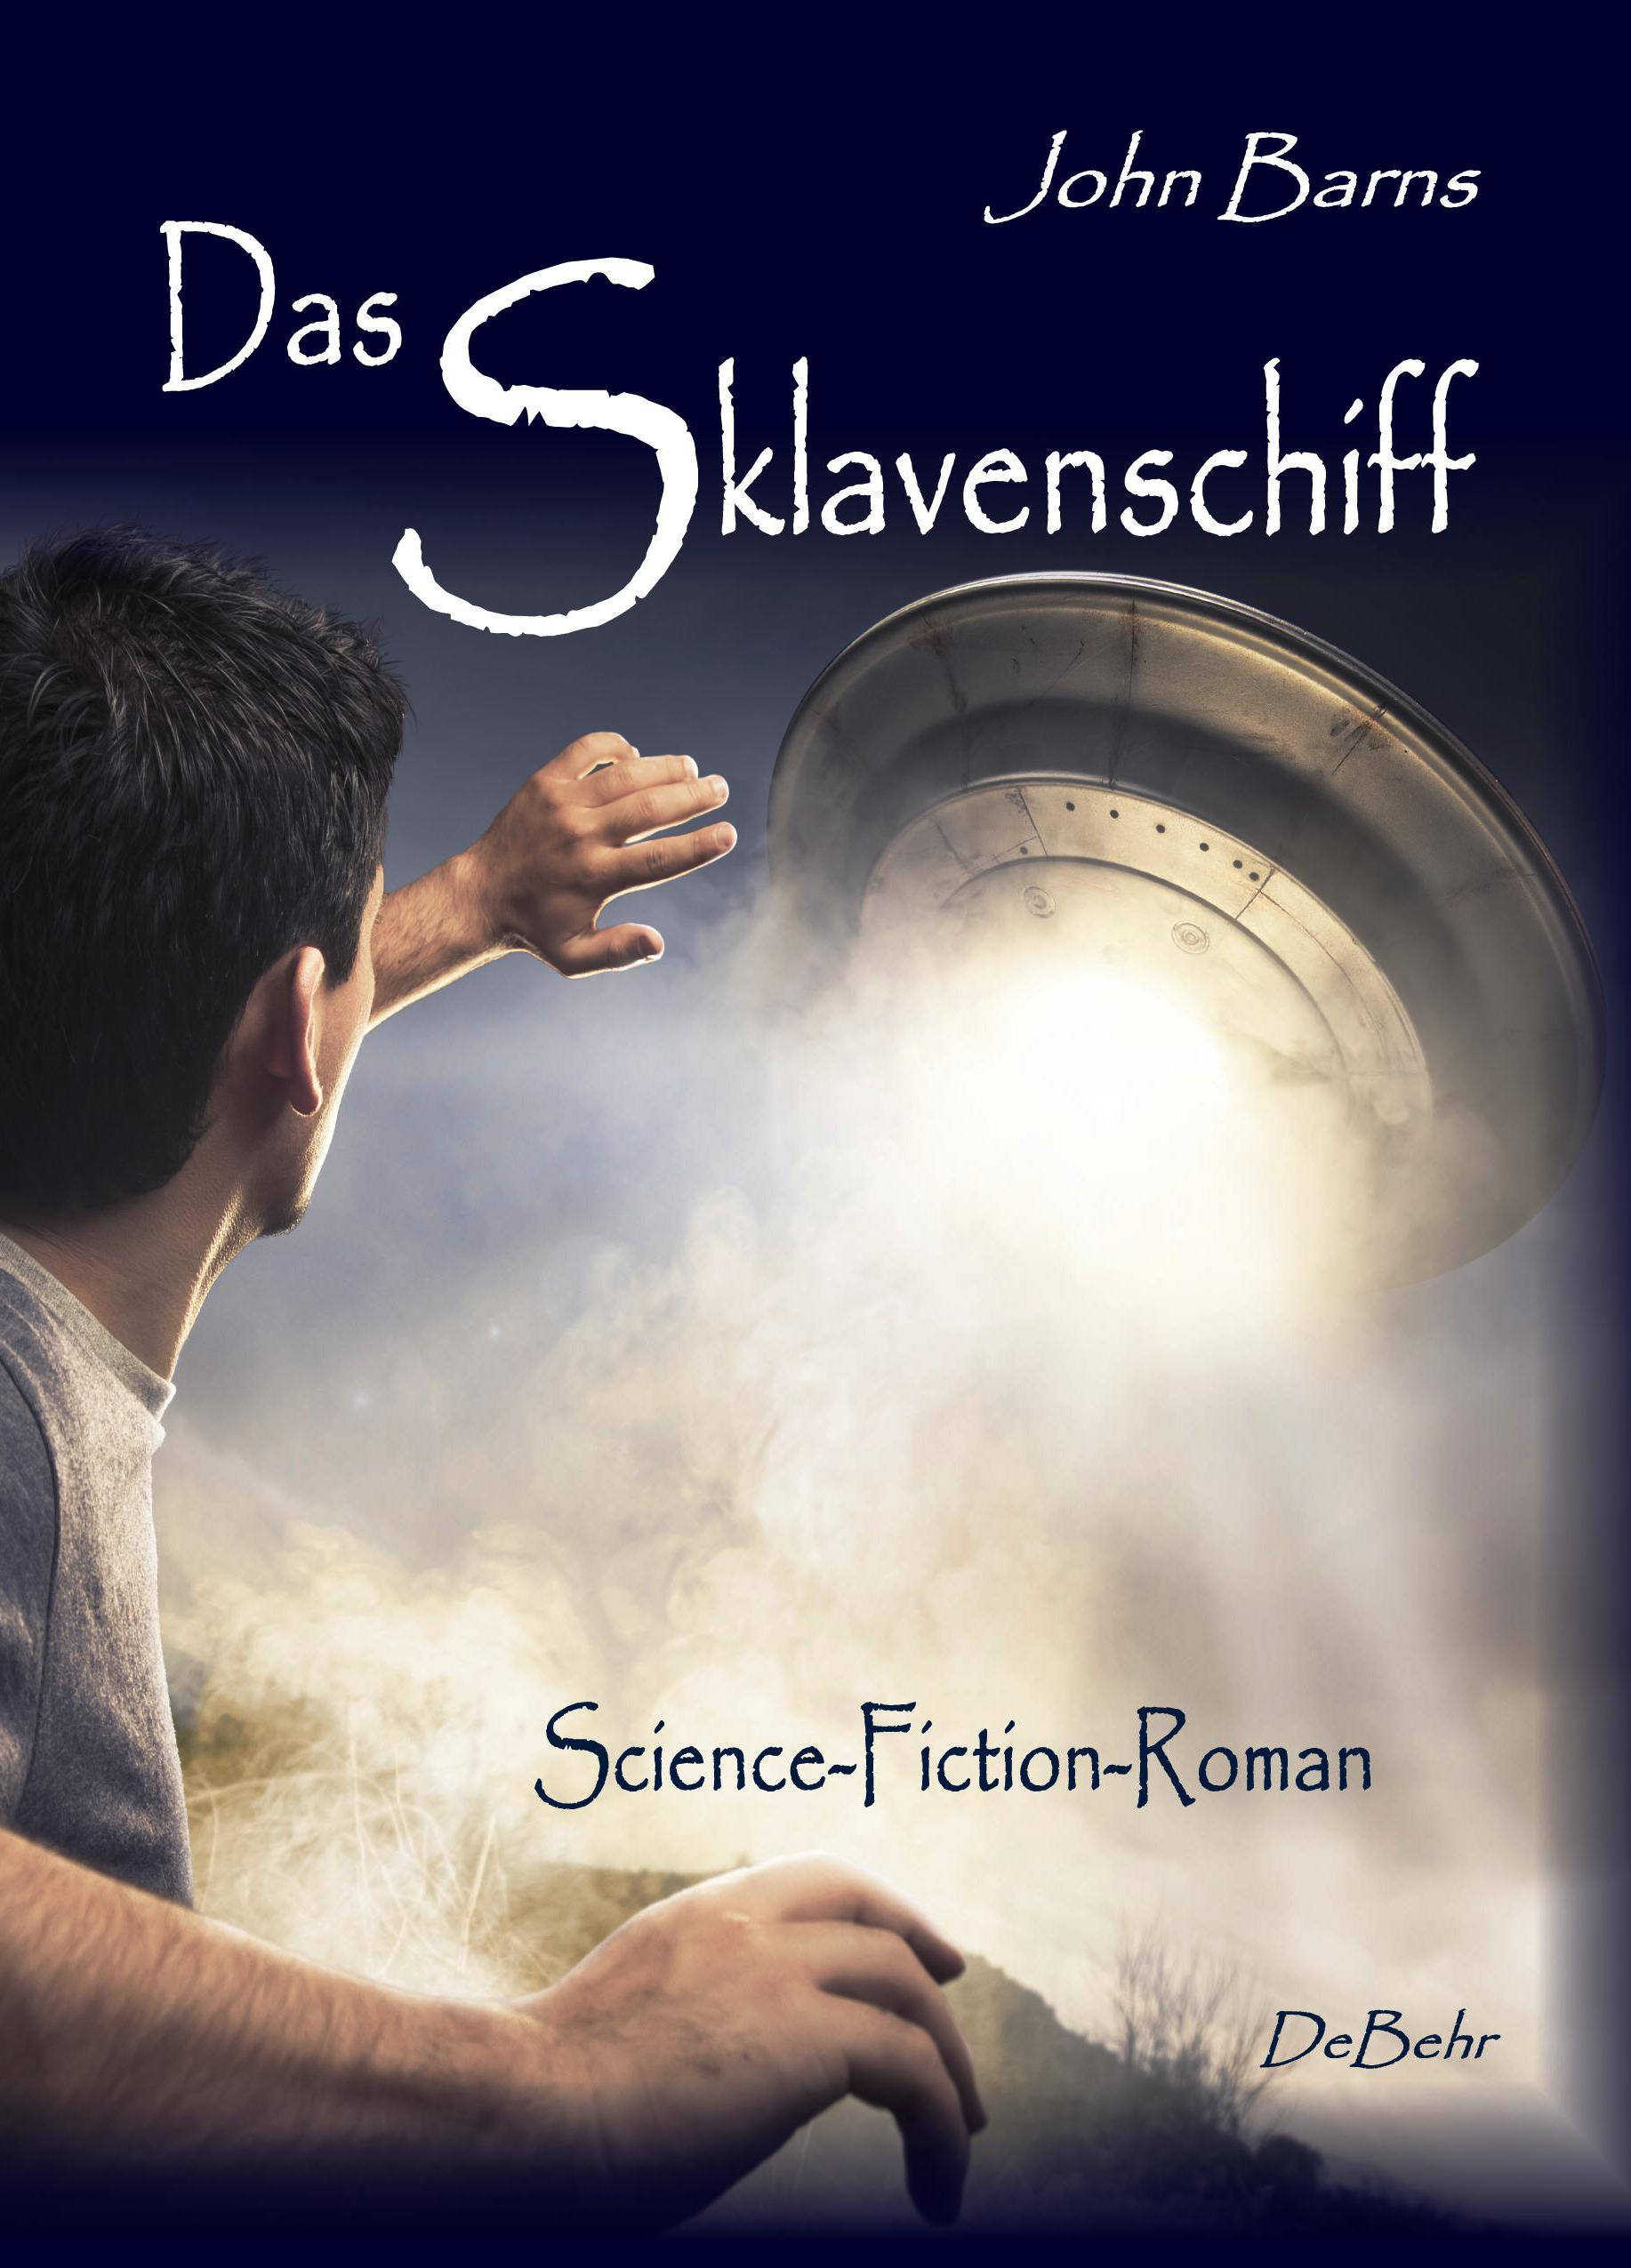 Das Sklavenschiff - Science-Fiction-Roman, John Barns